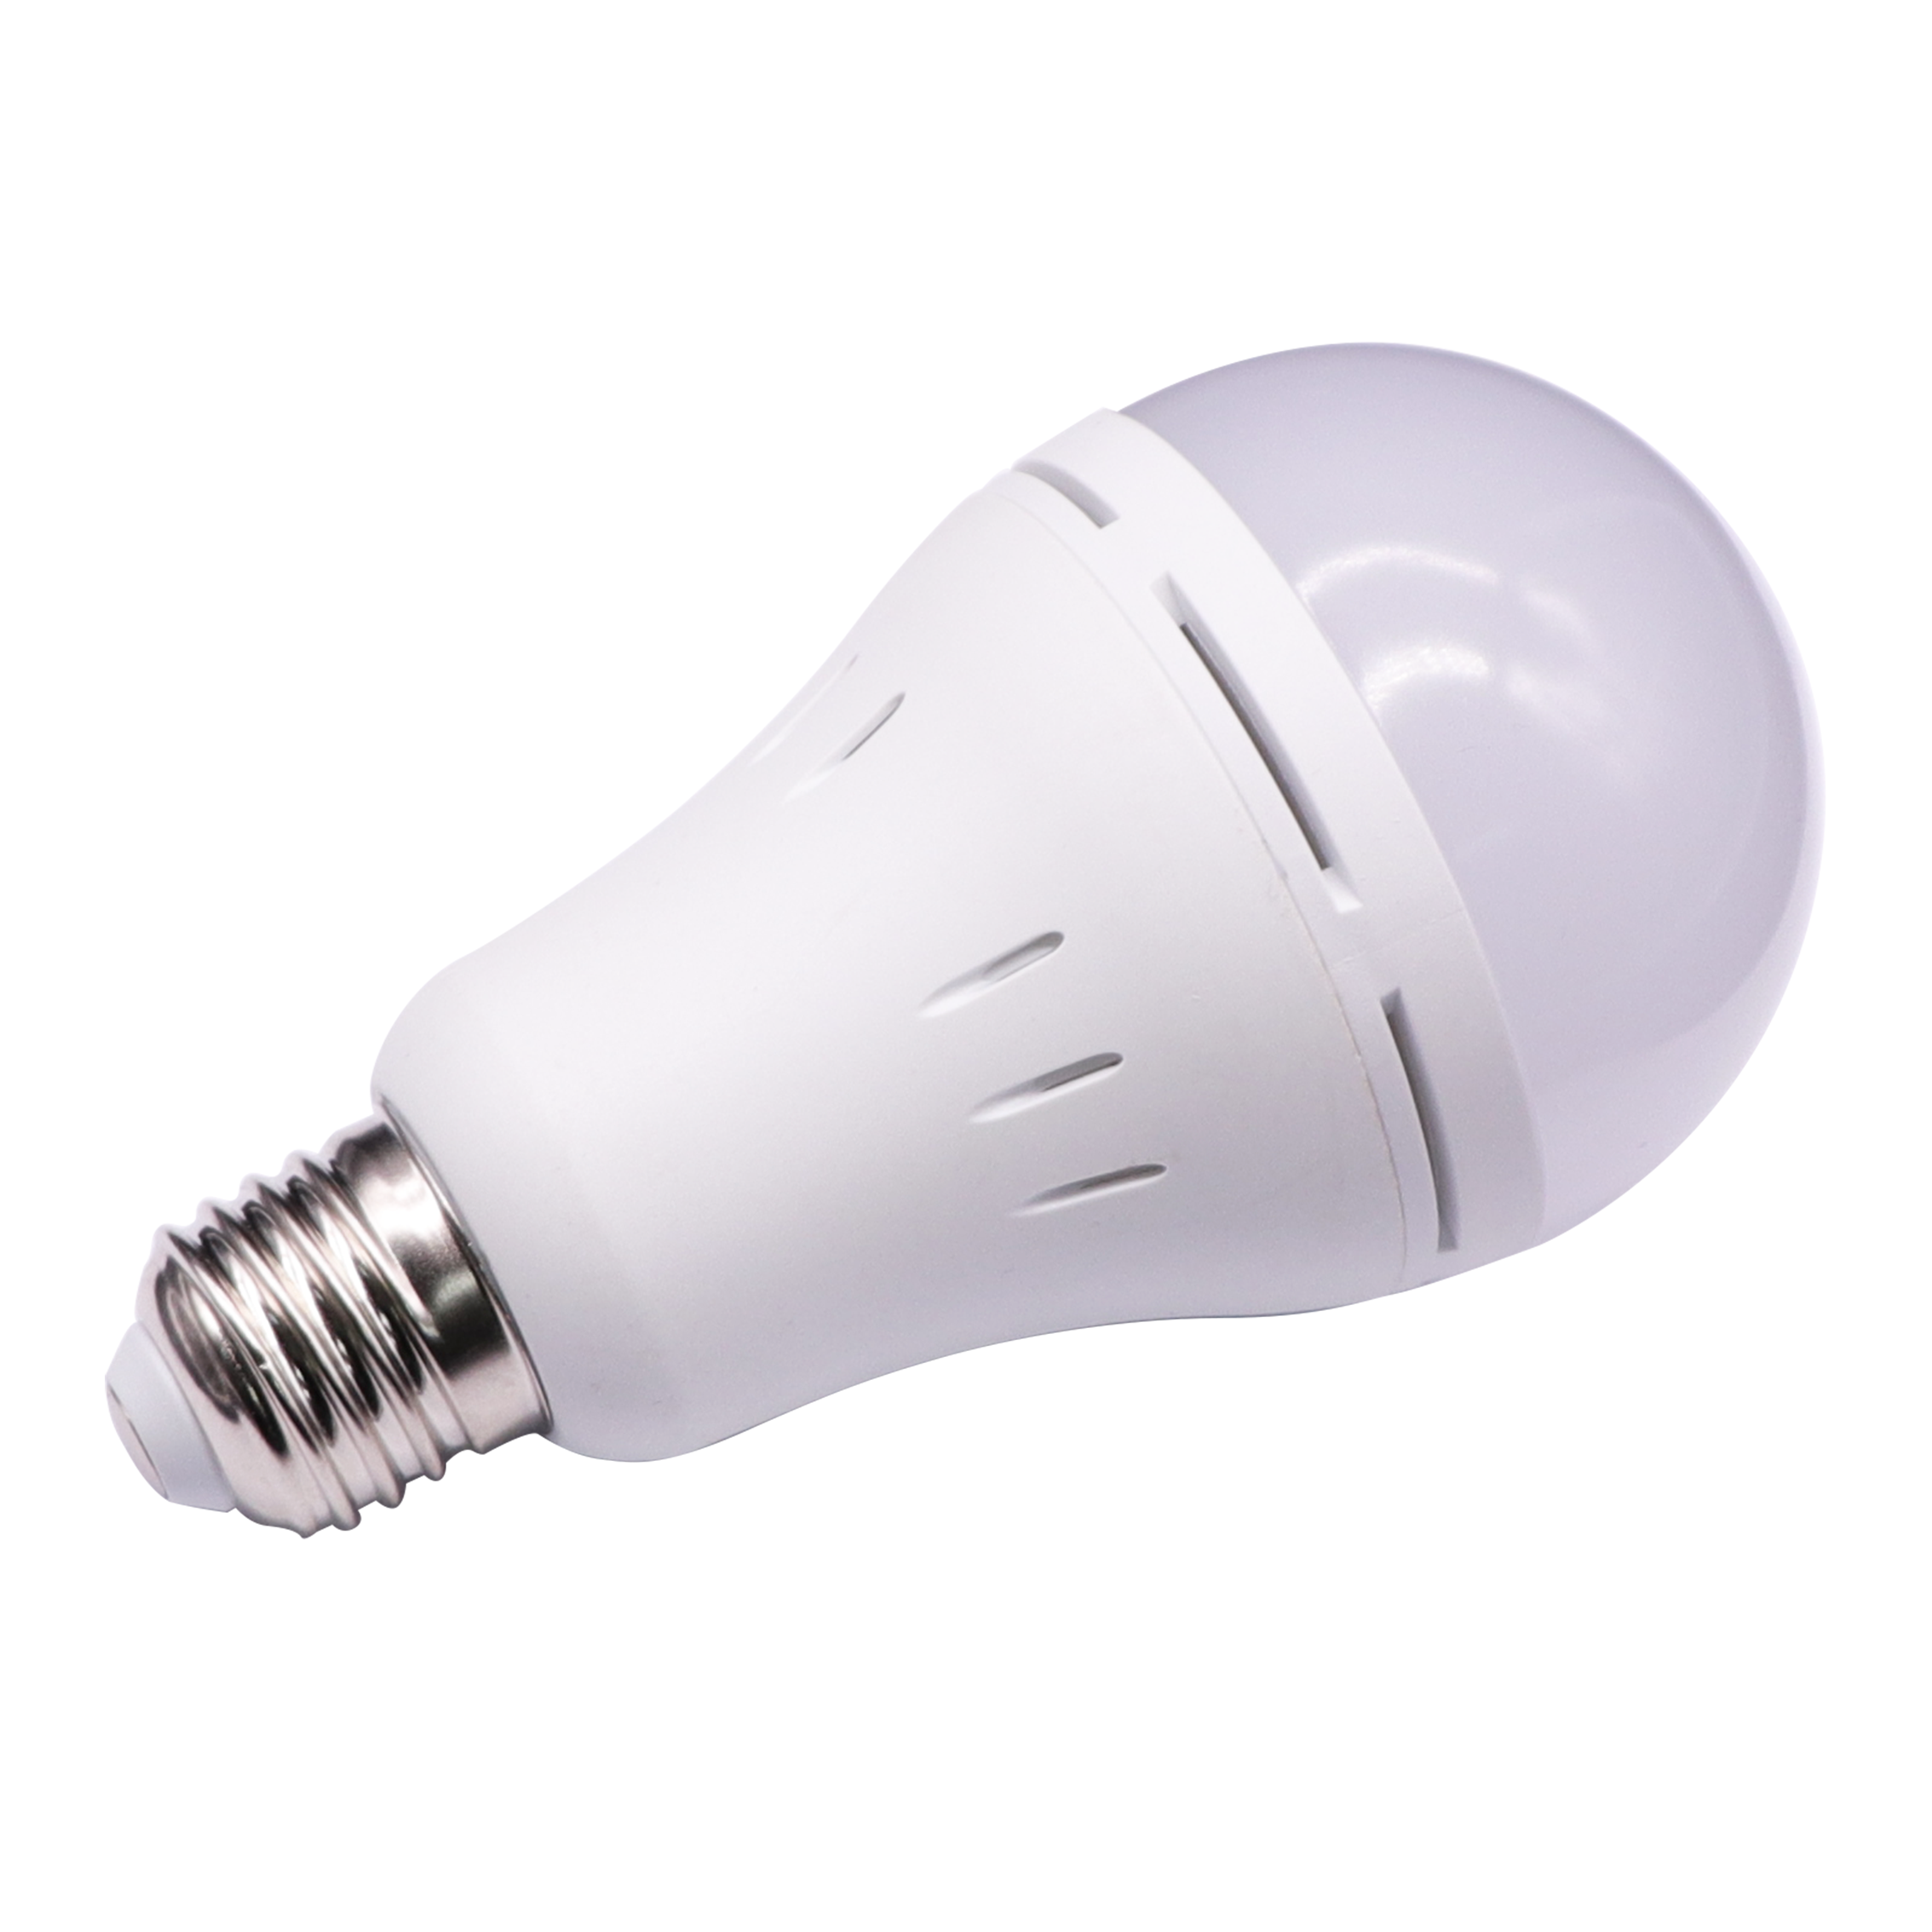 Innovative new products emergency led bulbs AC85-265V led emergency light 9W rechargeable bulb for office